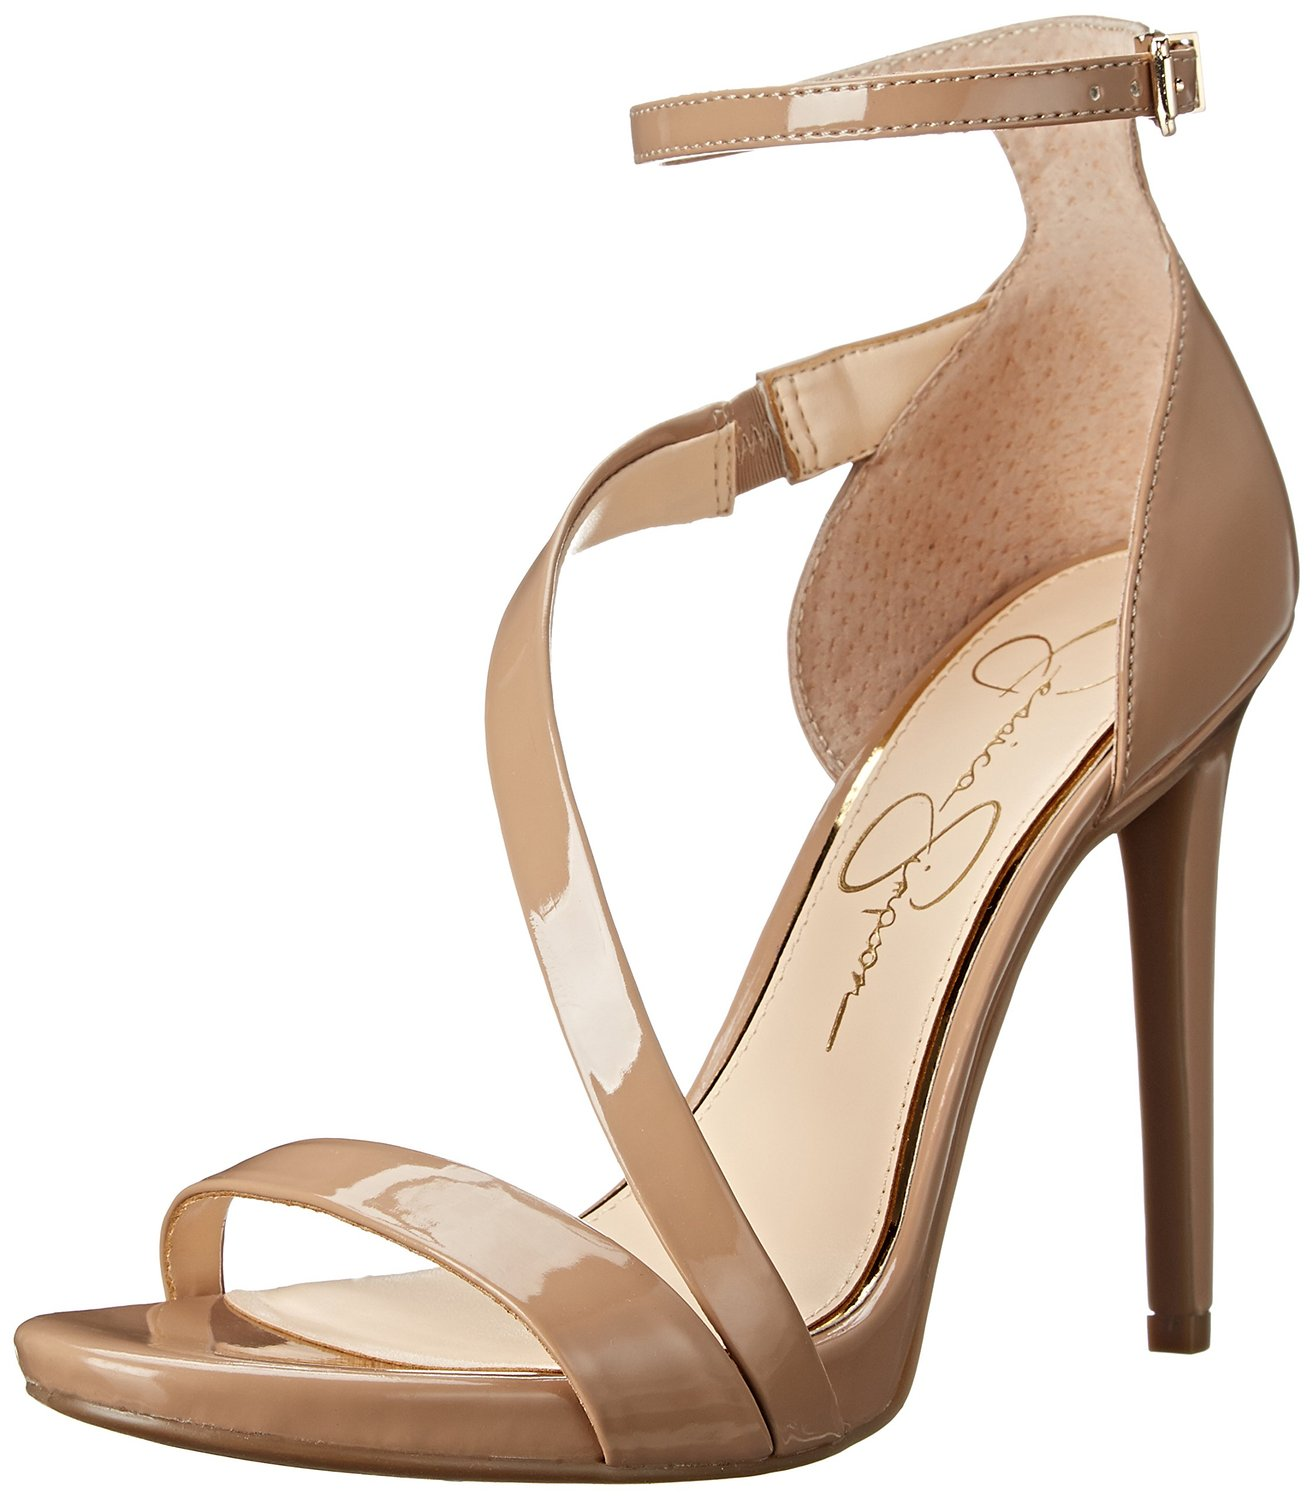 05679819ee19 Jessica Simpson Rayli Dress Pump Nude